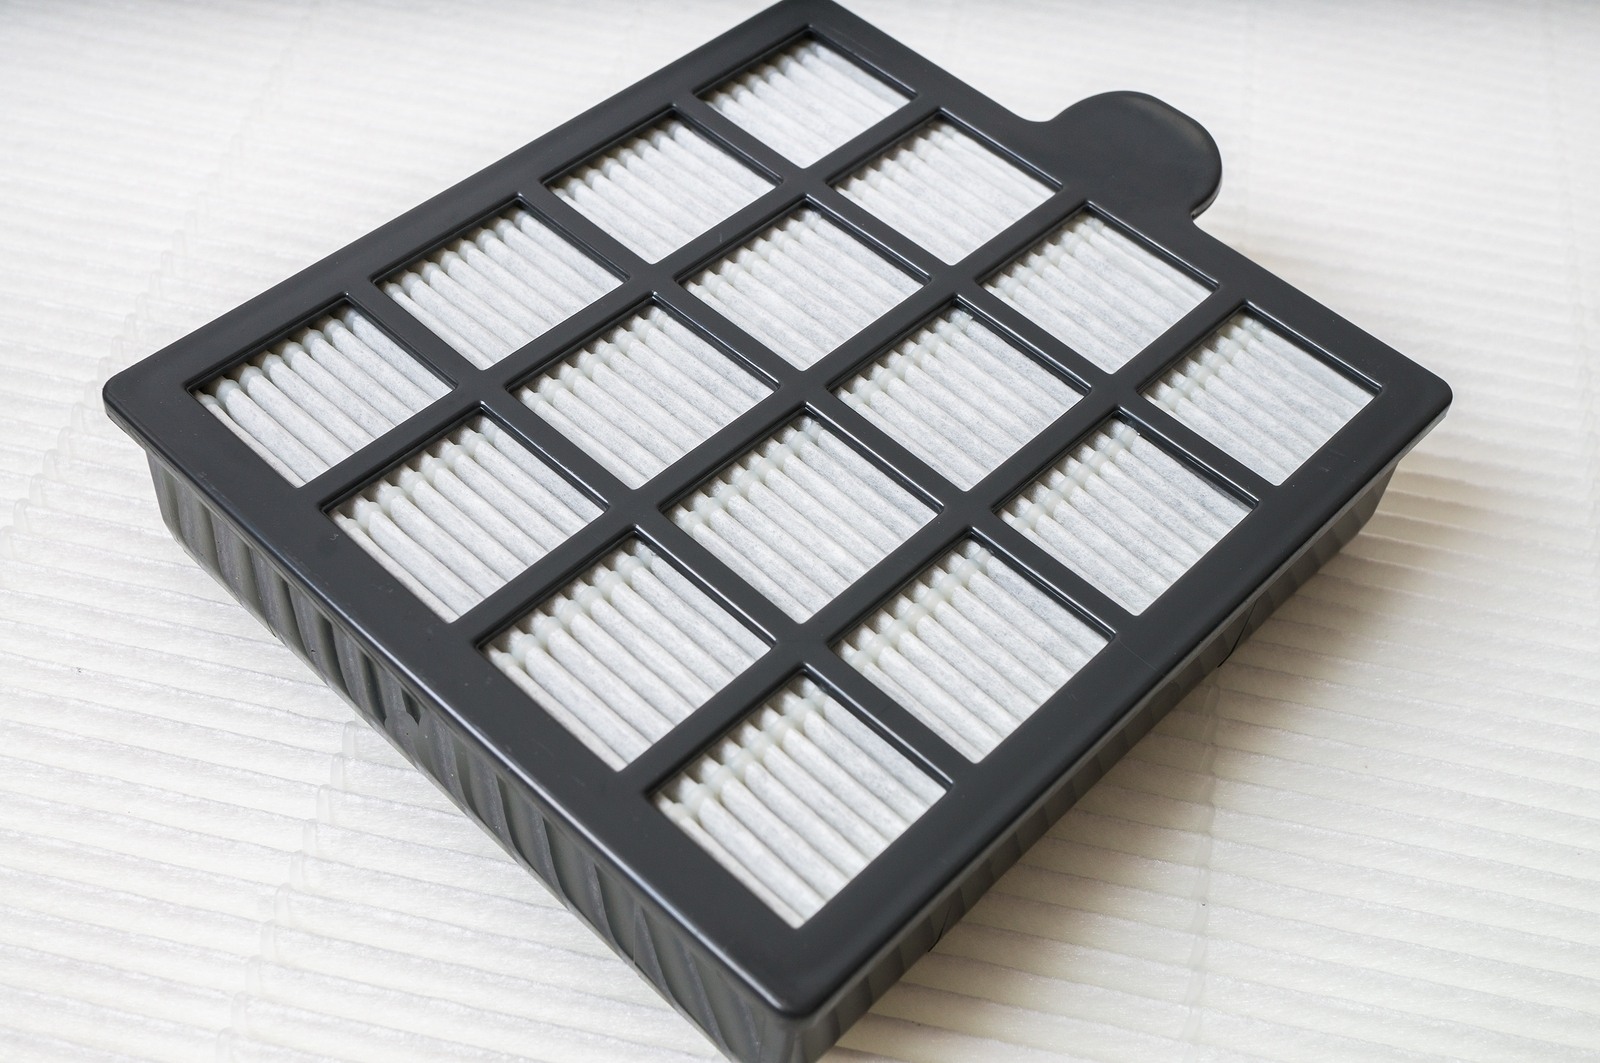 HEPA dust filter for air purifier